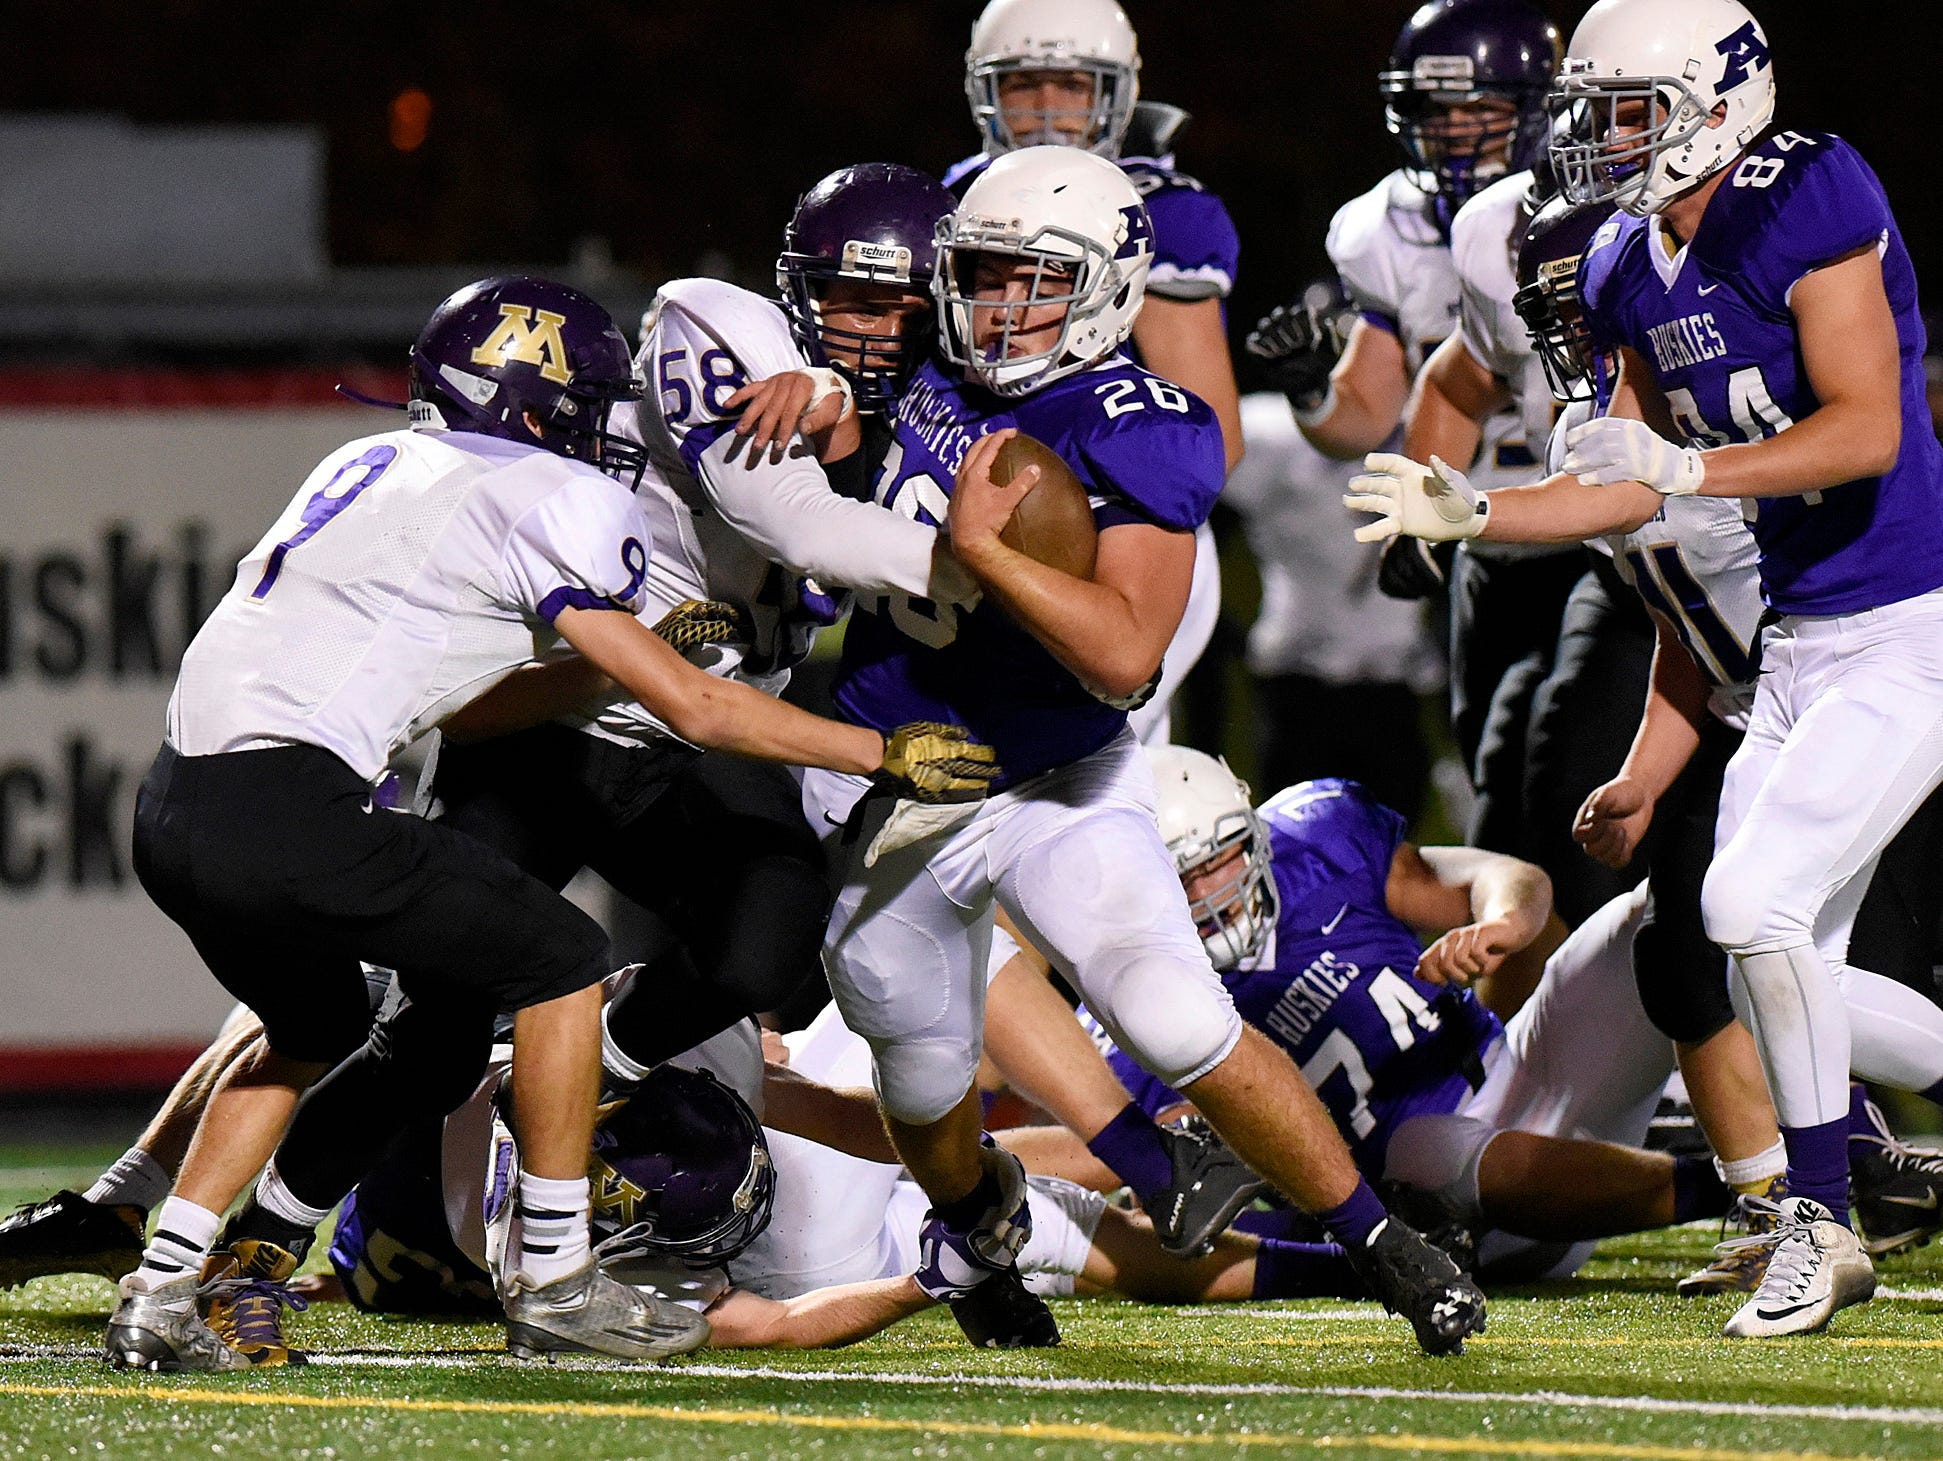 Albany's Will Kleinschmidt makes a short gain before being brought down by Montevideo's Preston Herfurth (9) and David Nelson (58) during the first half Saturday, Oct. 24 at Husky Stadium.